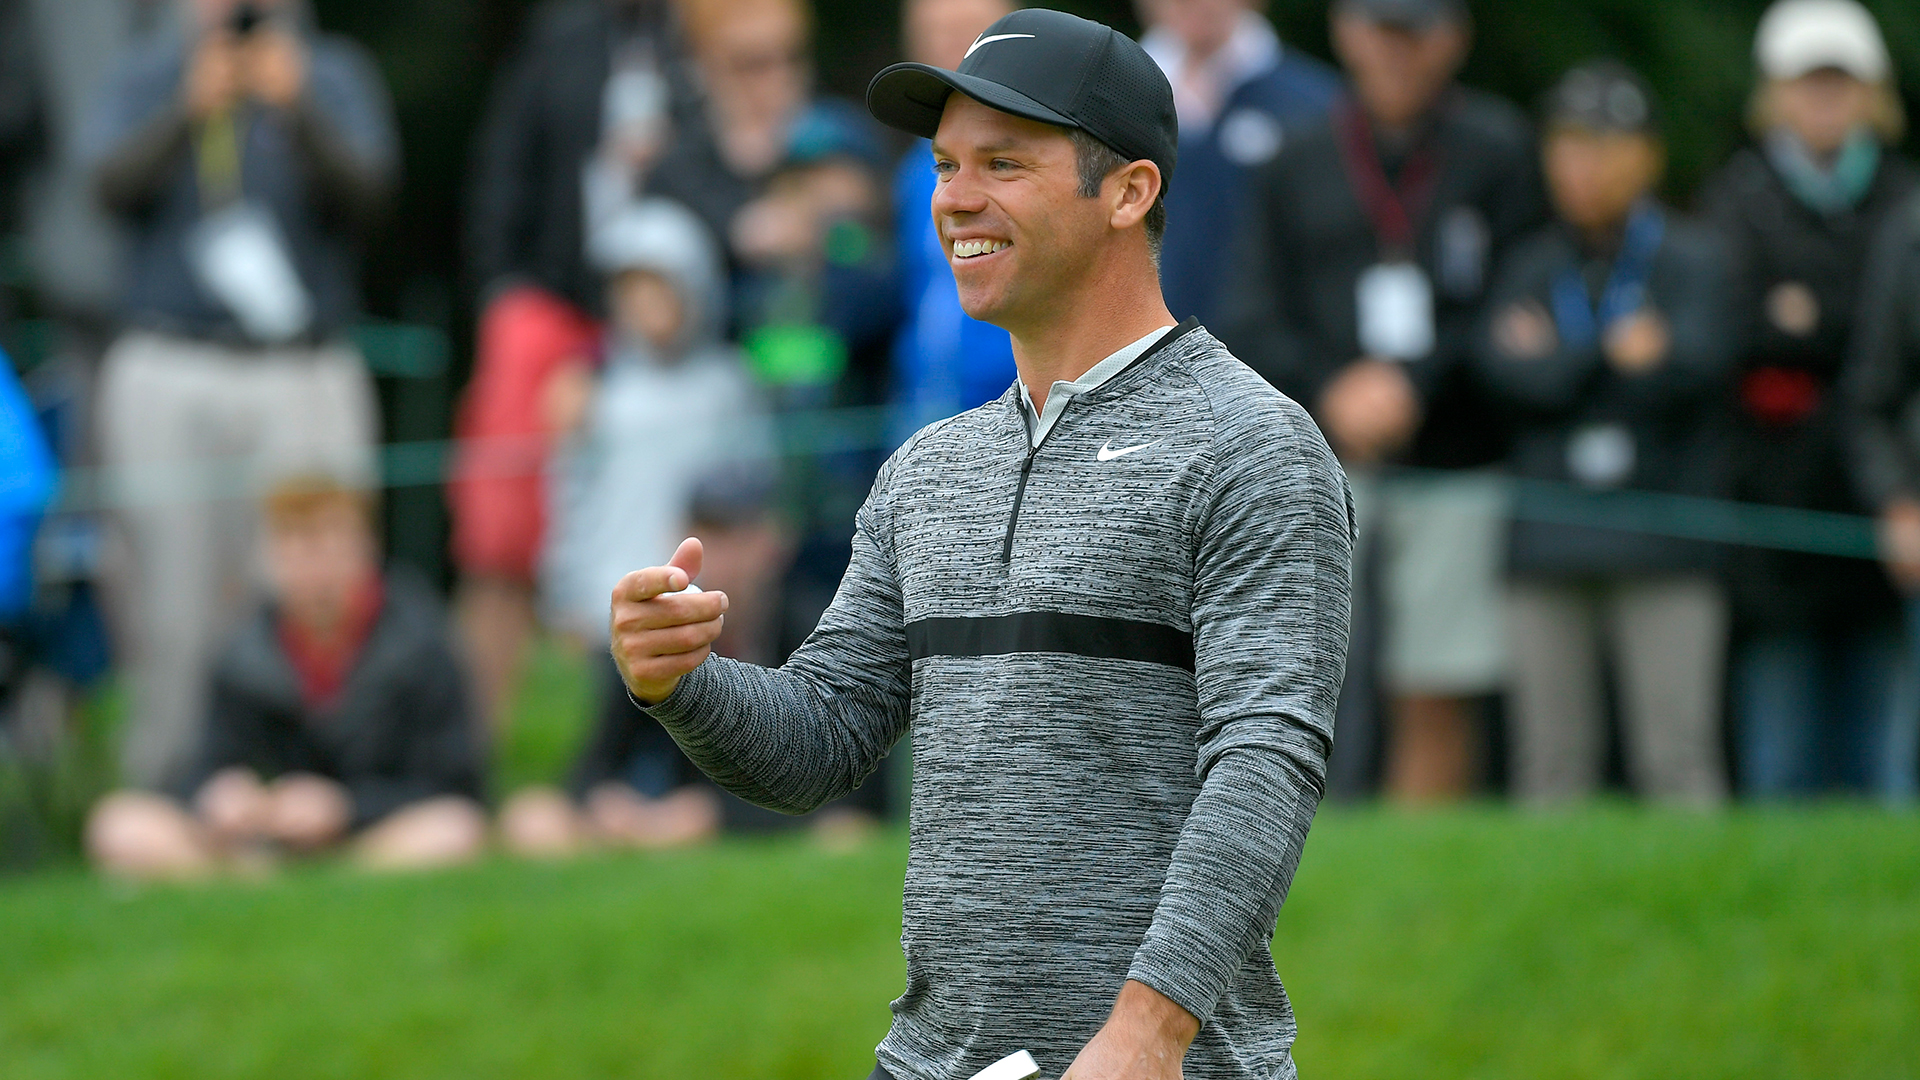 paulcasey_1920_travelers18_d3_smile_point